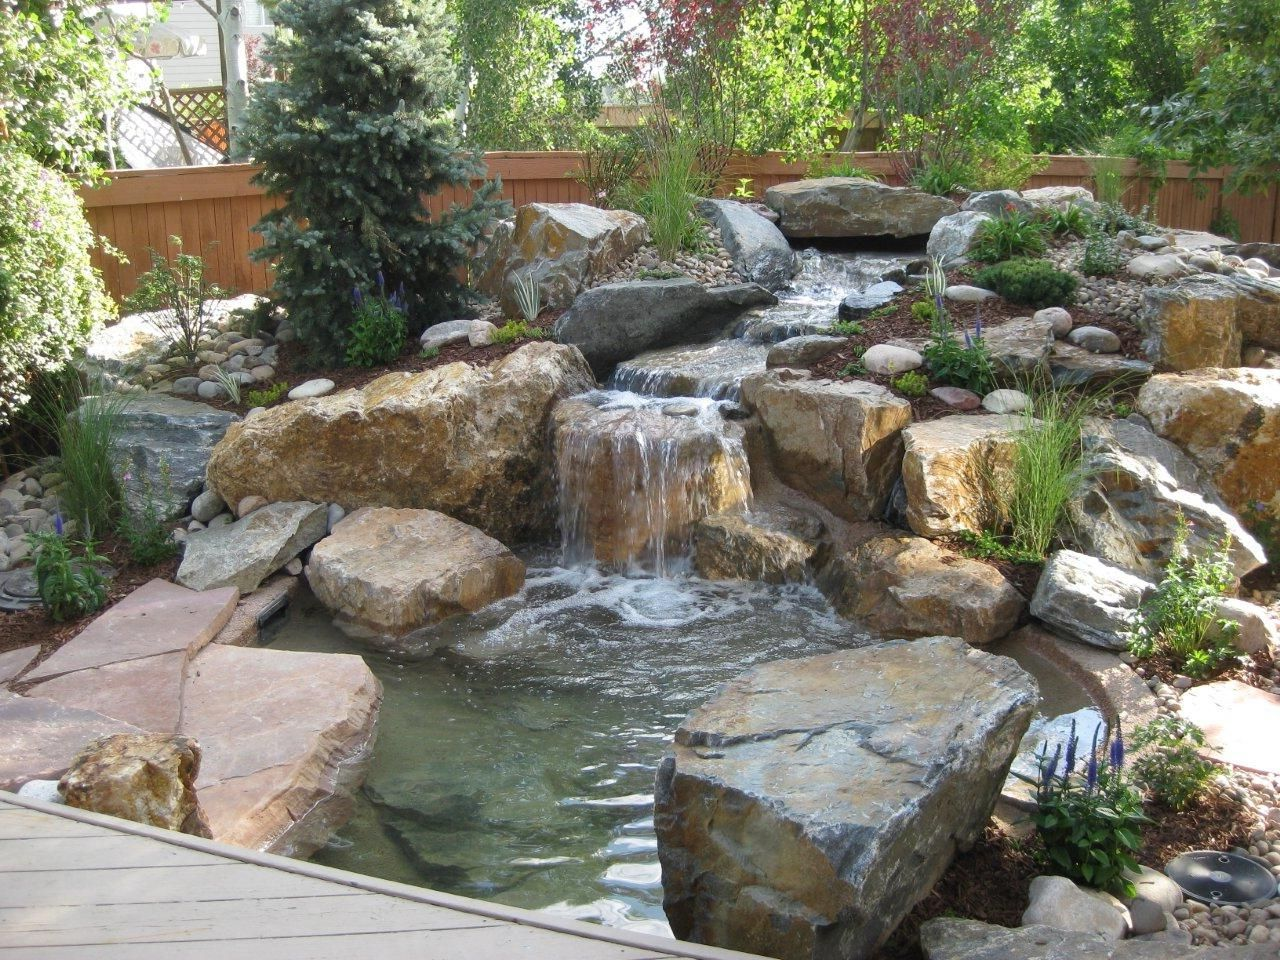 Backyard water features in japanese garden concept Backyard water features